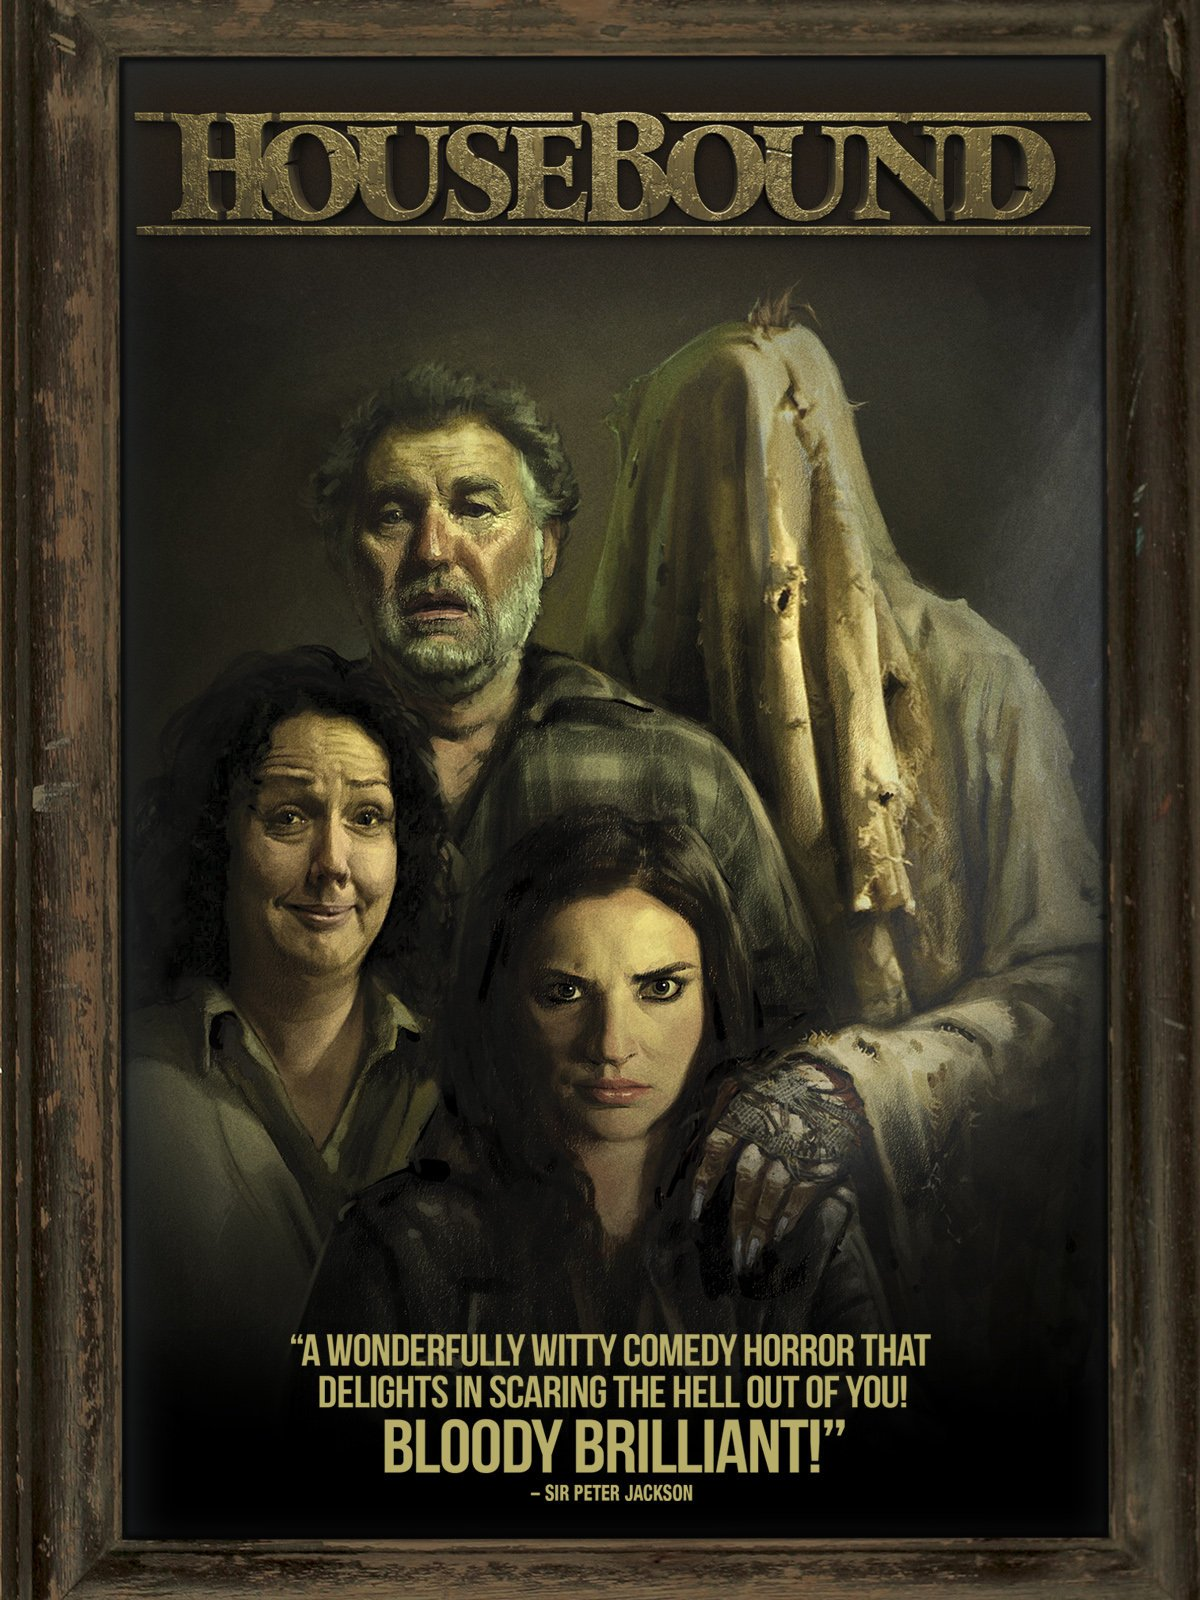 Housebound (2014) - Directed by: Gerard JohnstoneStarring: Morgana O'Reilly, Rima Te Wiata, Glen-Paul Waru, Ryan LamppRated: NR (Suggested R for Some Language and Comic Violence)Running Time: 1 h 47 mTMM Score: 3 stars out of 5STRENGTHS: Story, Tone, ComedyWEAKNESSES: Pacing